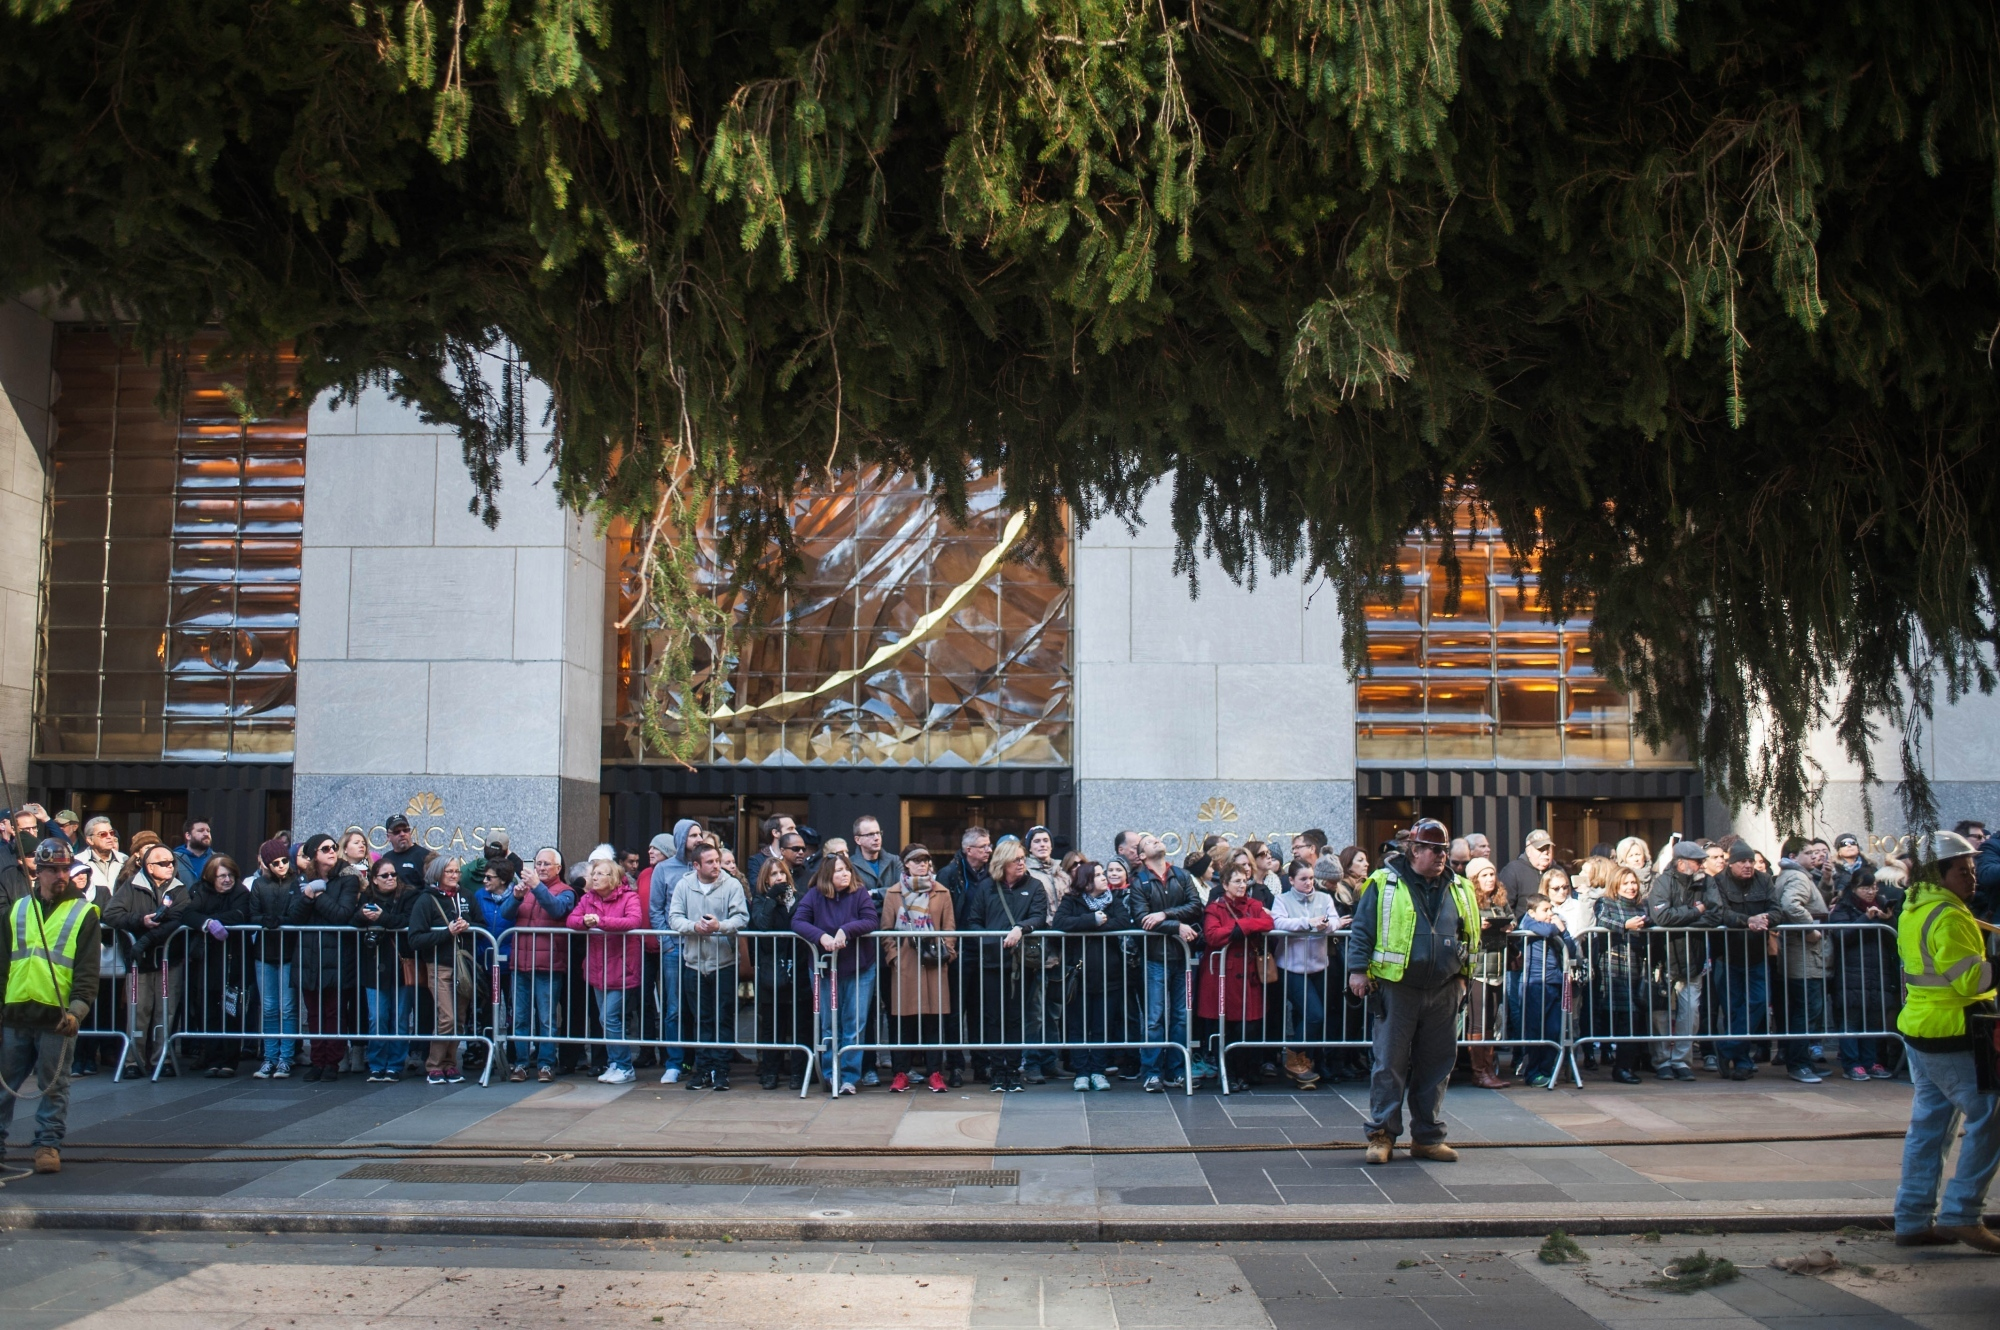 Spectators gather in front of Rockefeller Center entrance to view the tree up close. Security guards are on extra duty to ensure no one is injured by flyaway tree parts.